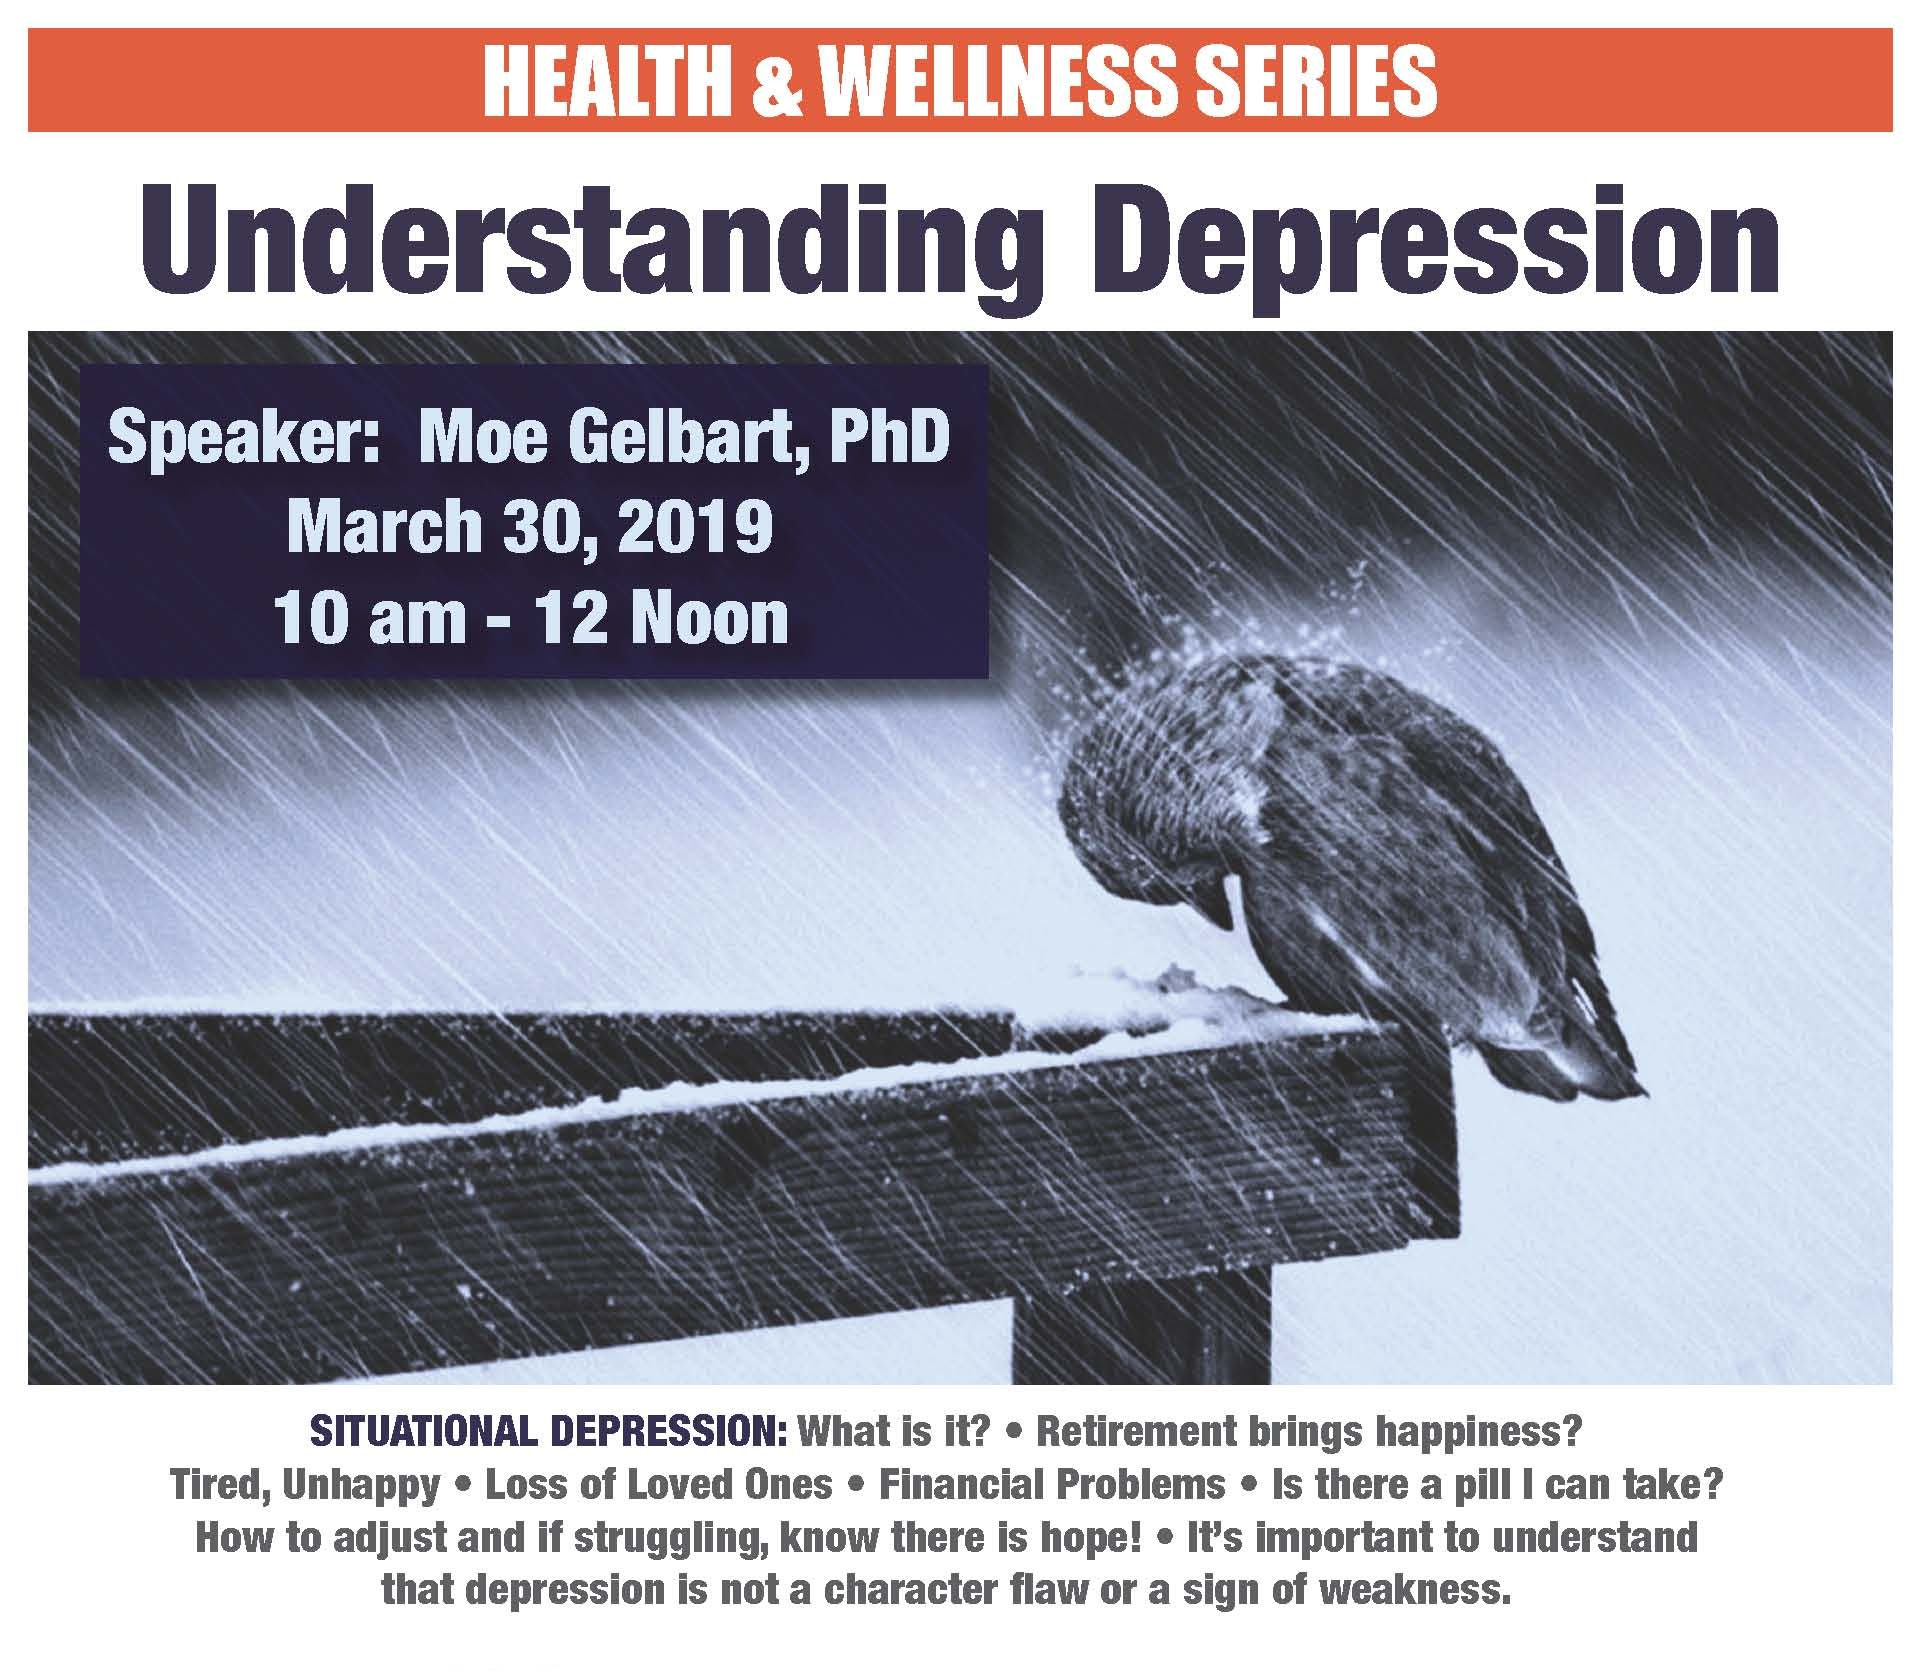 Understanding Depression, March 30